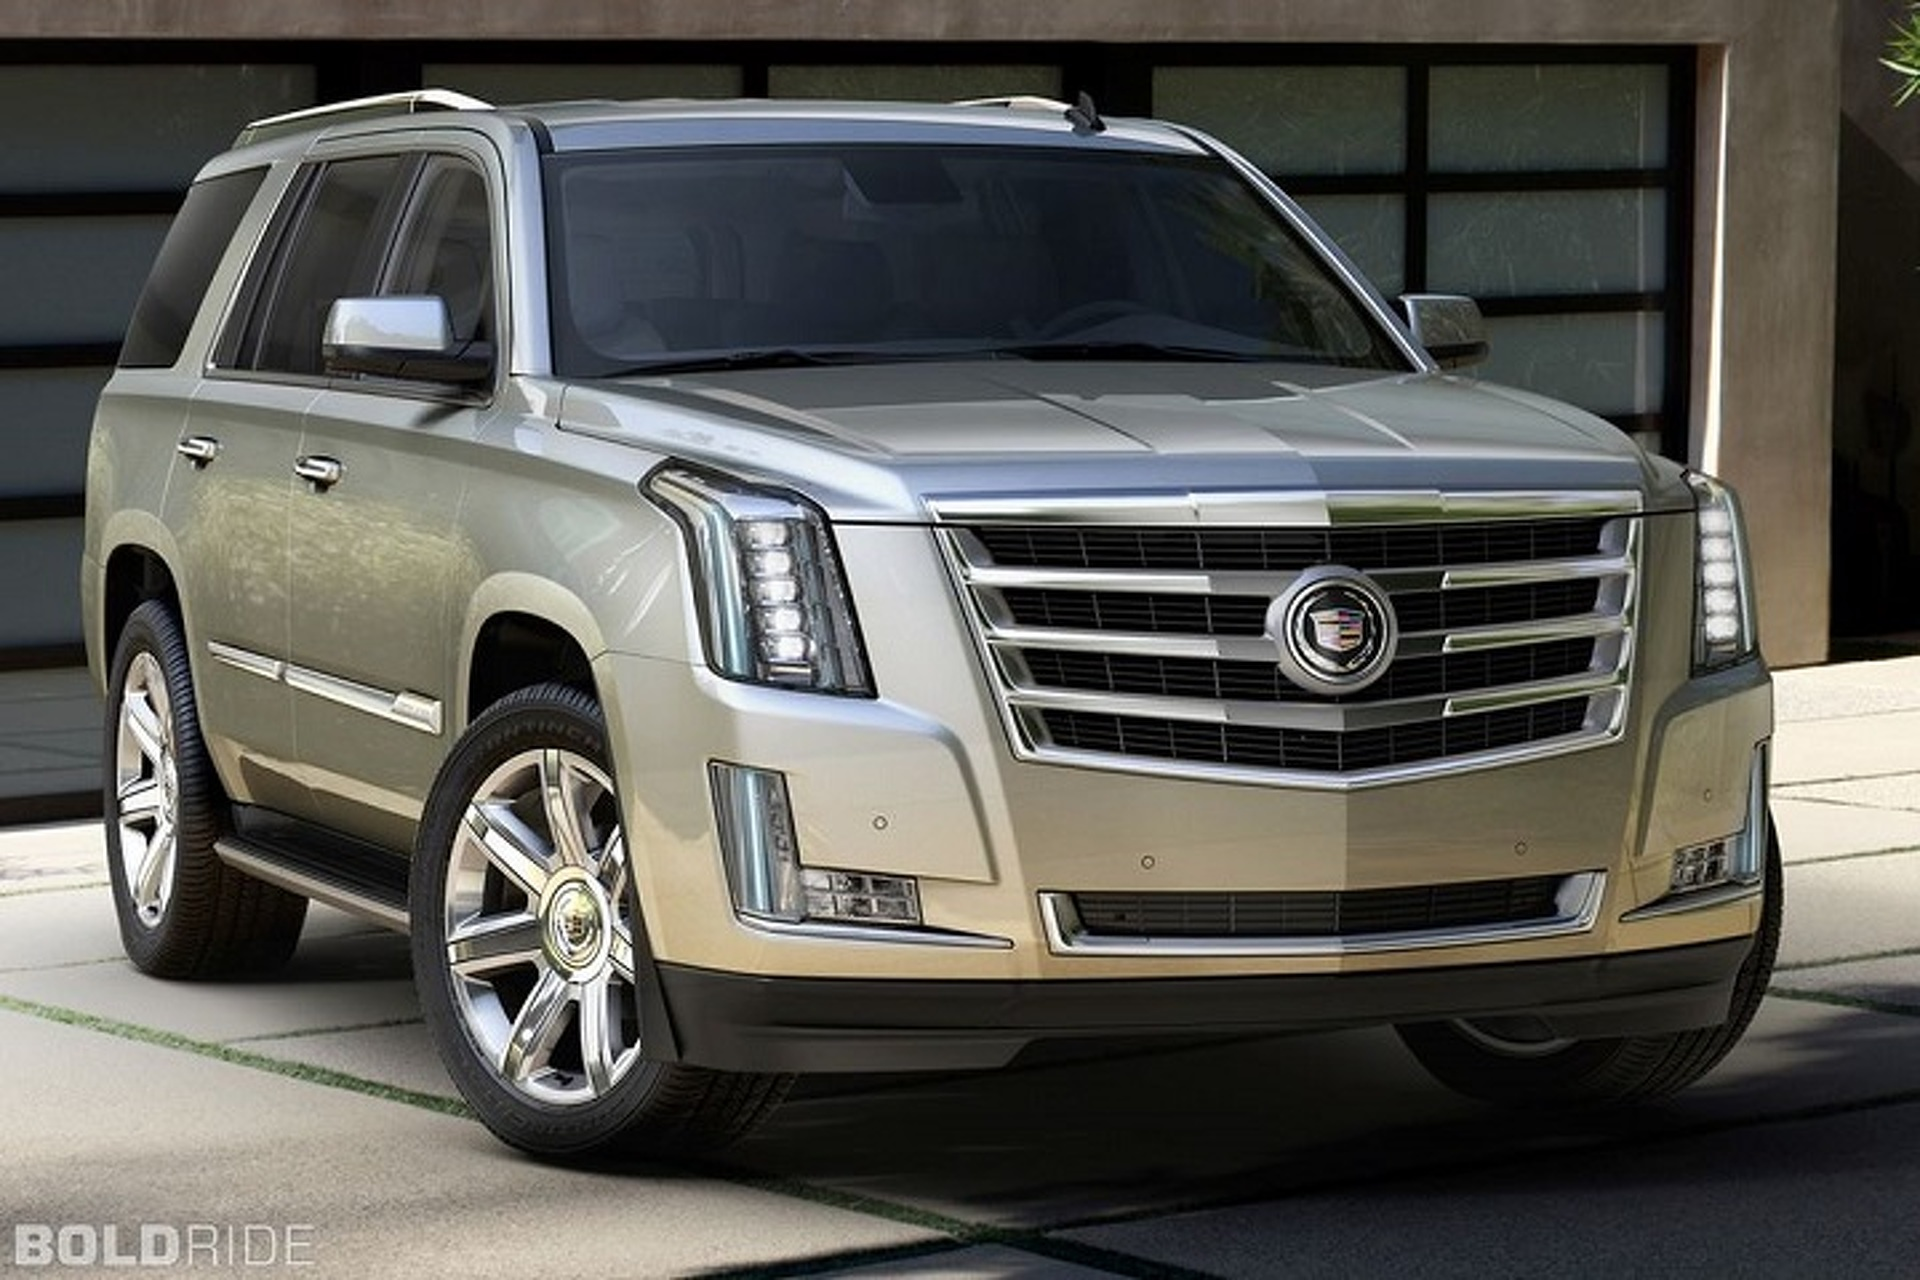 Is Cadillac Preparing a High-Performance Escalade V?